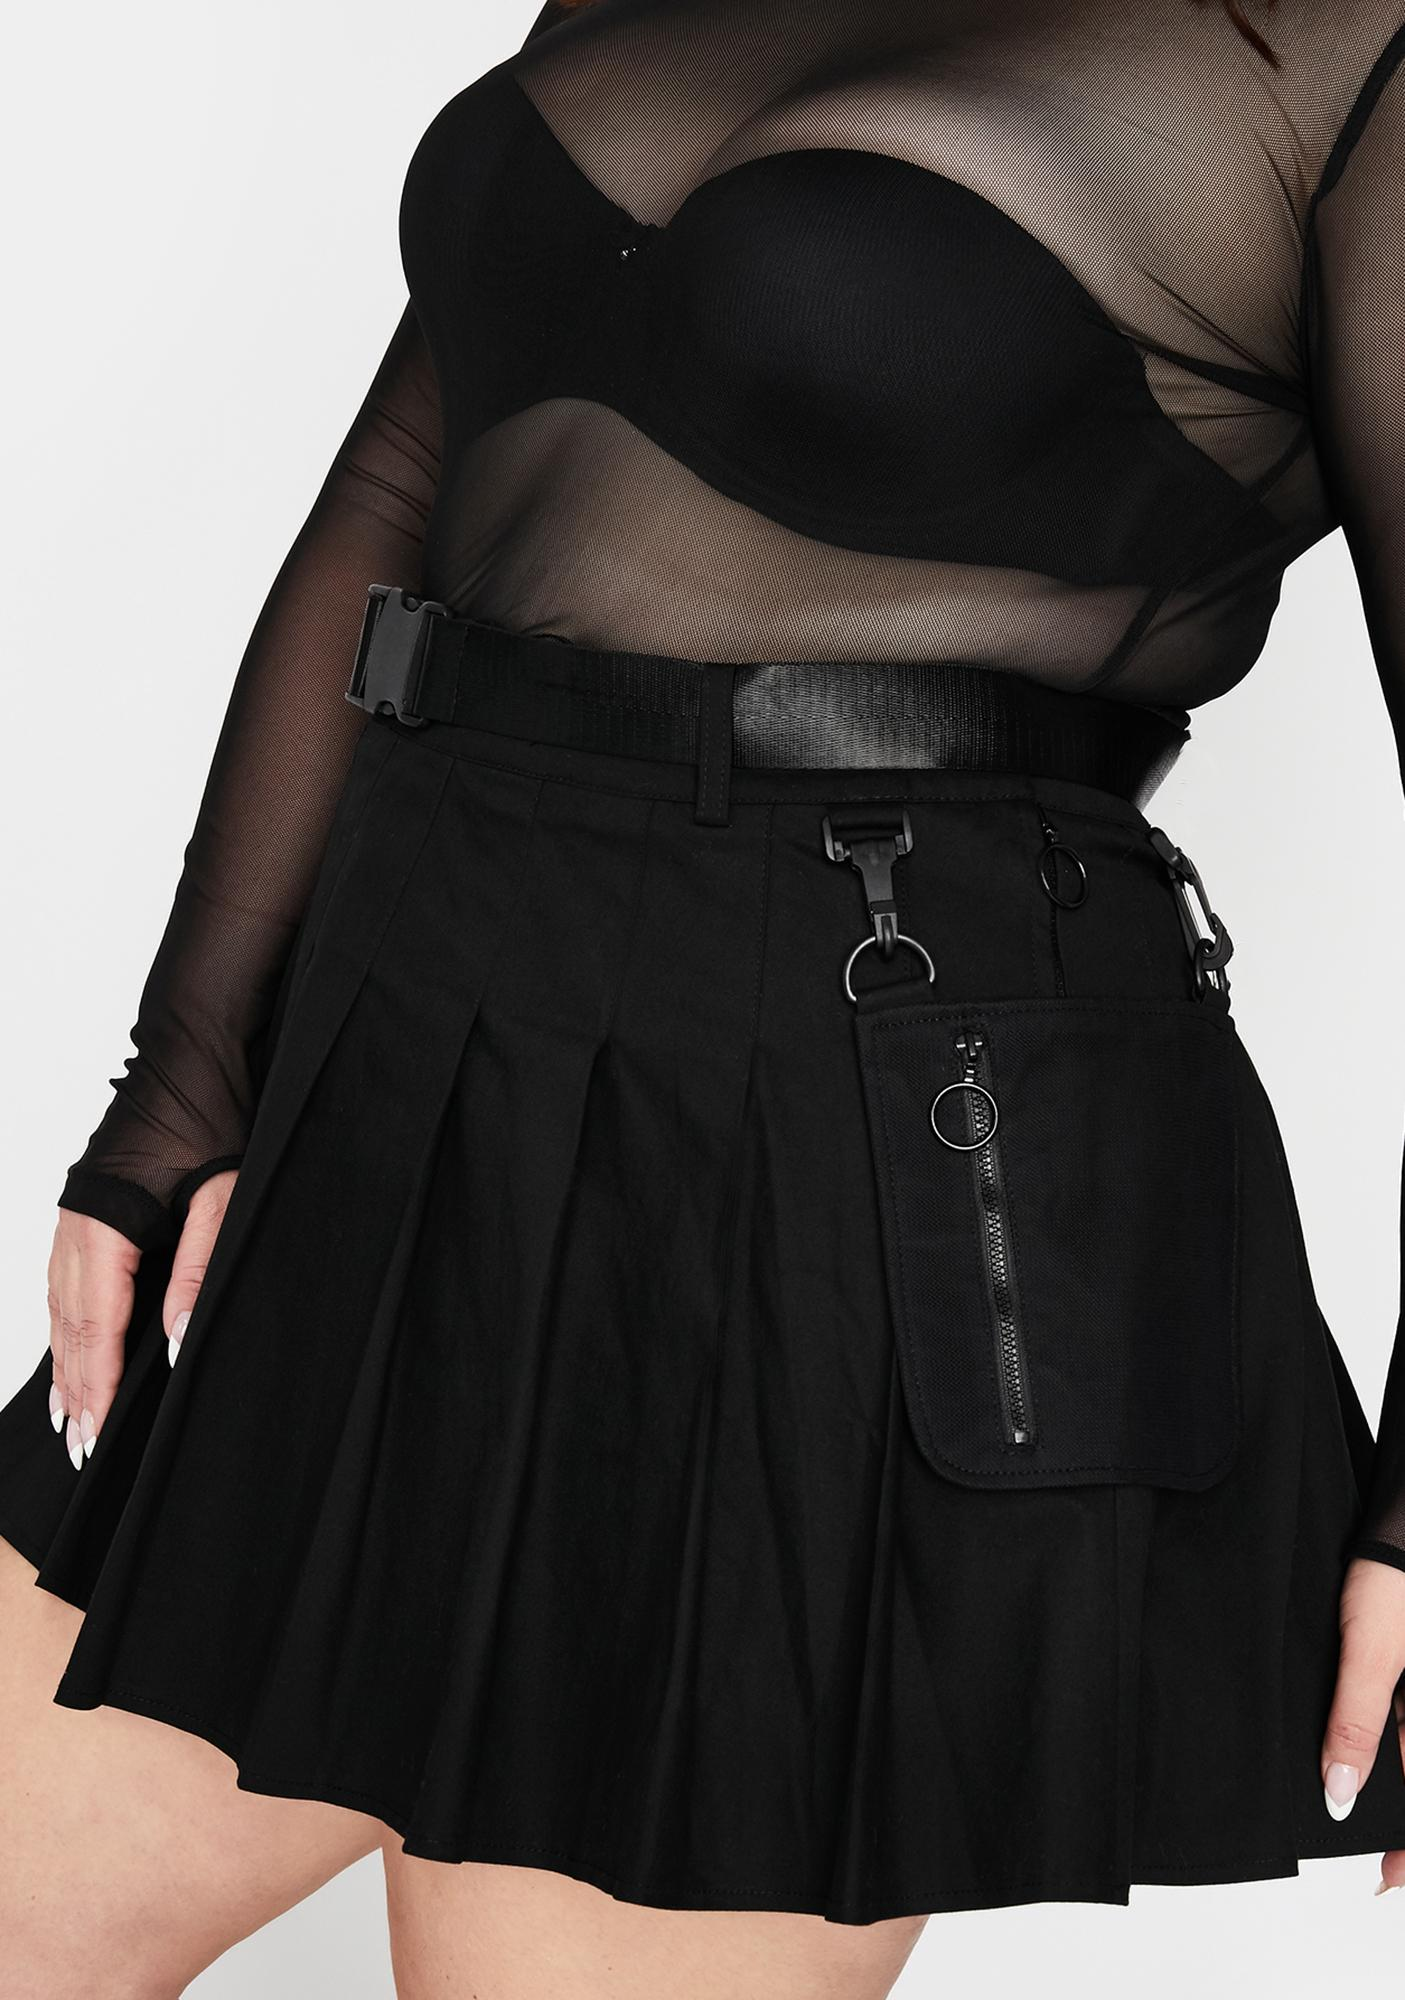 Current Mood Devious It's High Security Utility Skirt